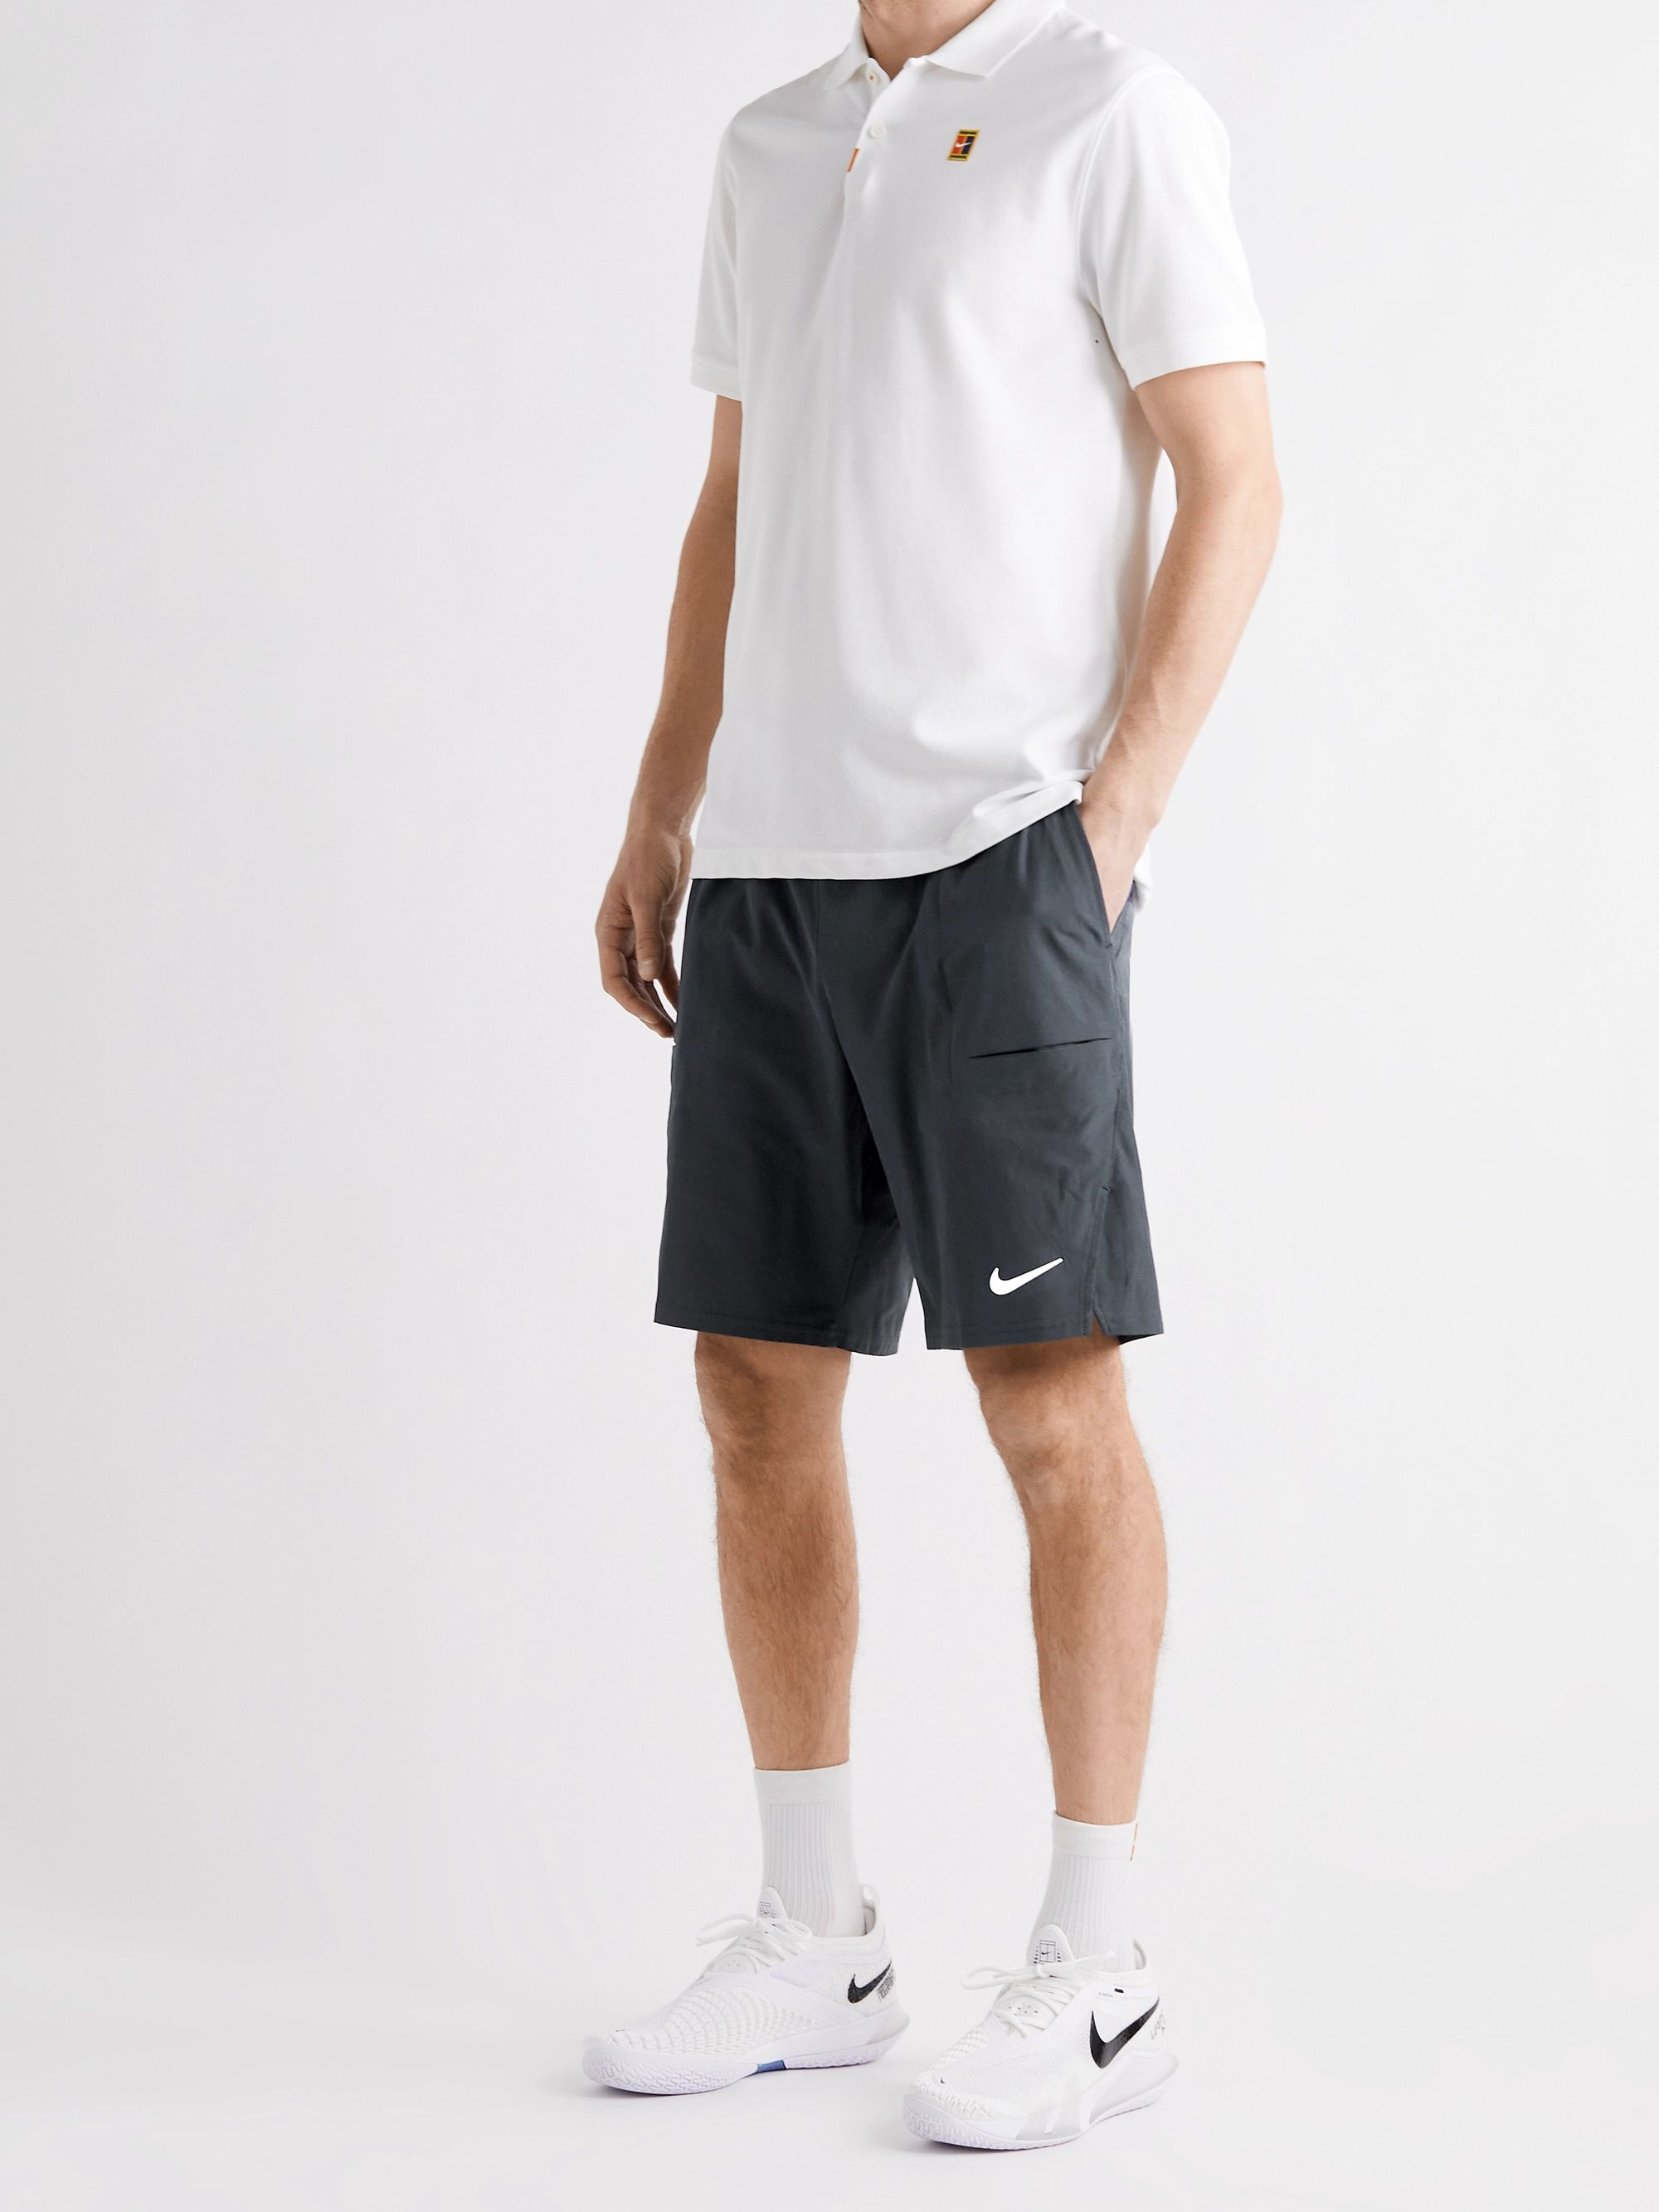 NIKE TENNIS Advantage Dri-FIT Shorts